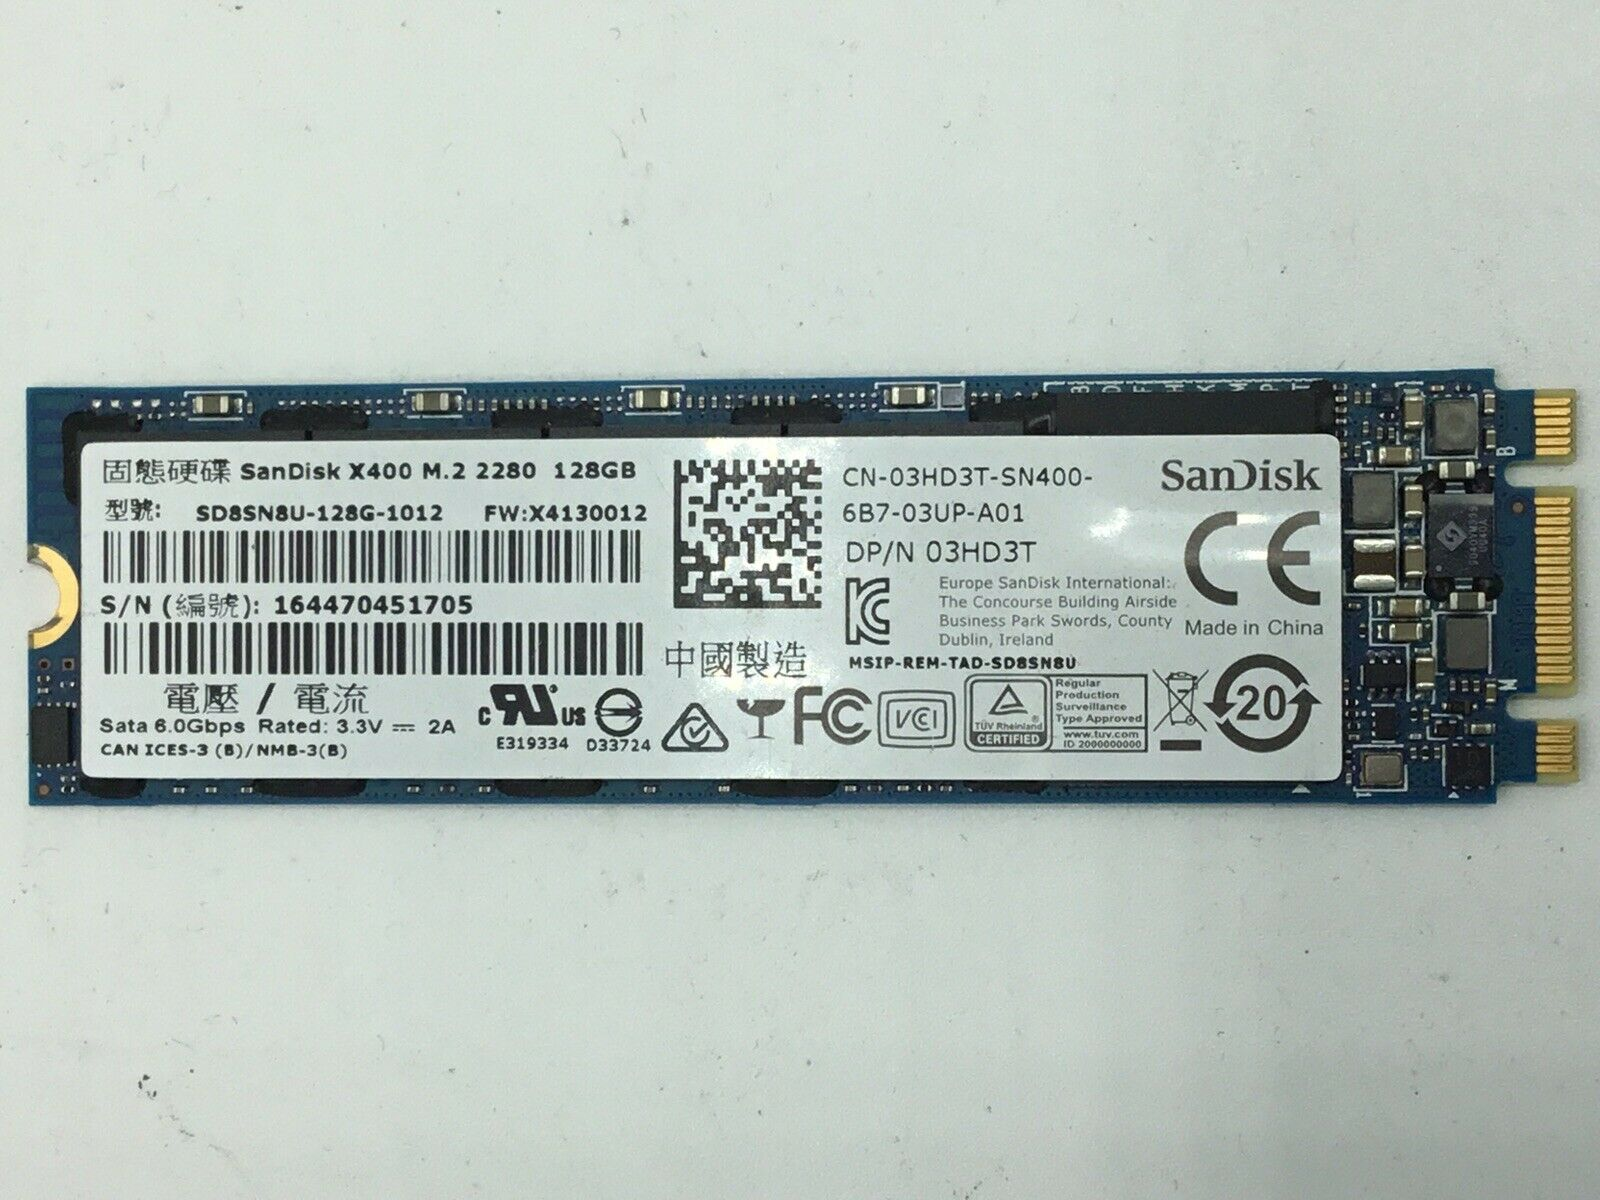 SanDisk SSD X400 128GB M.2 2280 Solid State Drive - SD8SN8U-128G-1012 03HD3T. Buy it now for 16.95